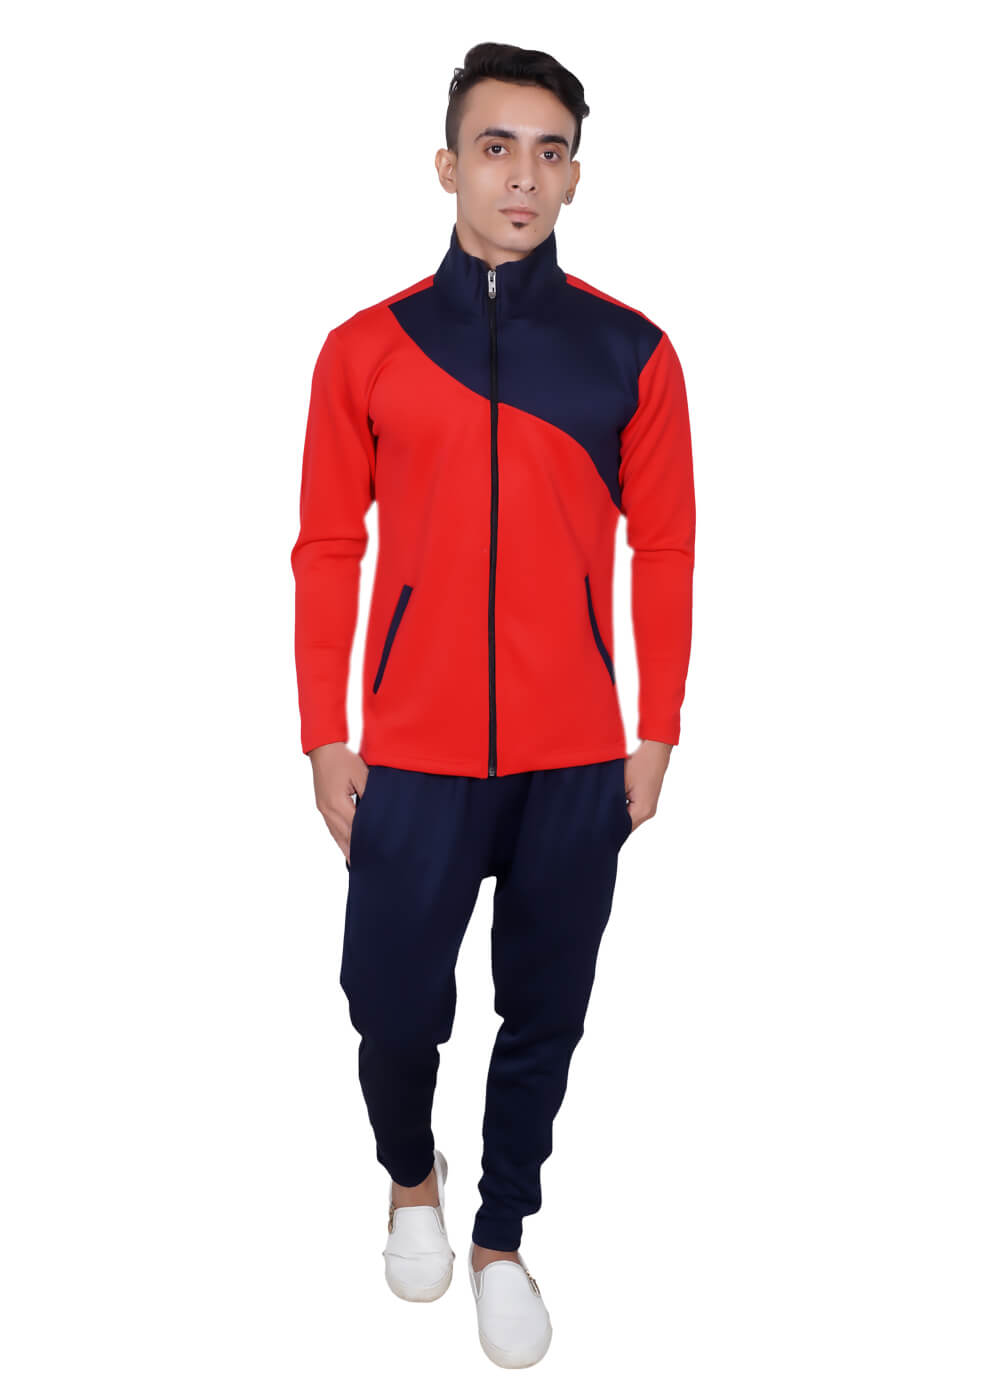 Cheap Tracksuits Manufacturers in Thiruvananthapuram